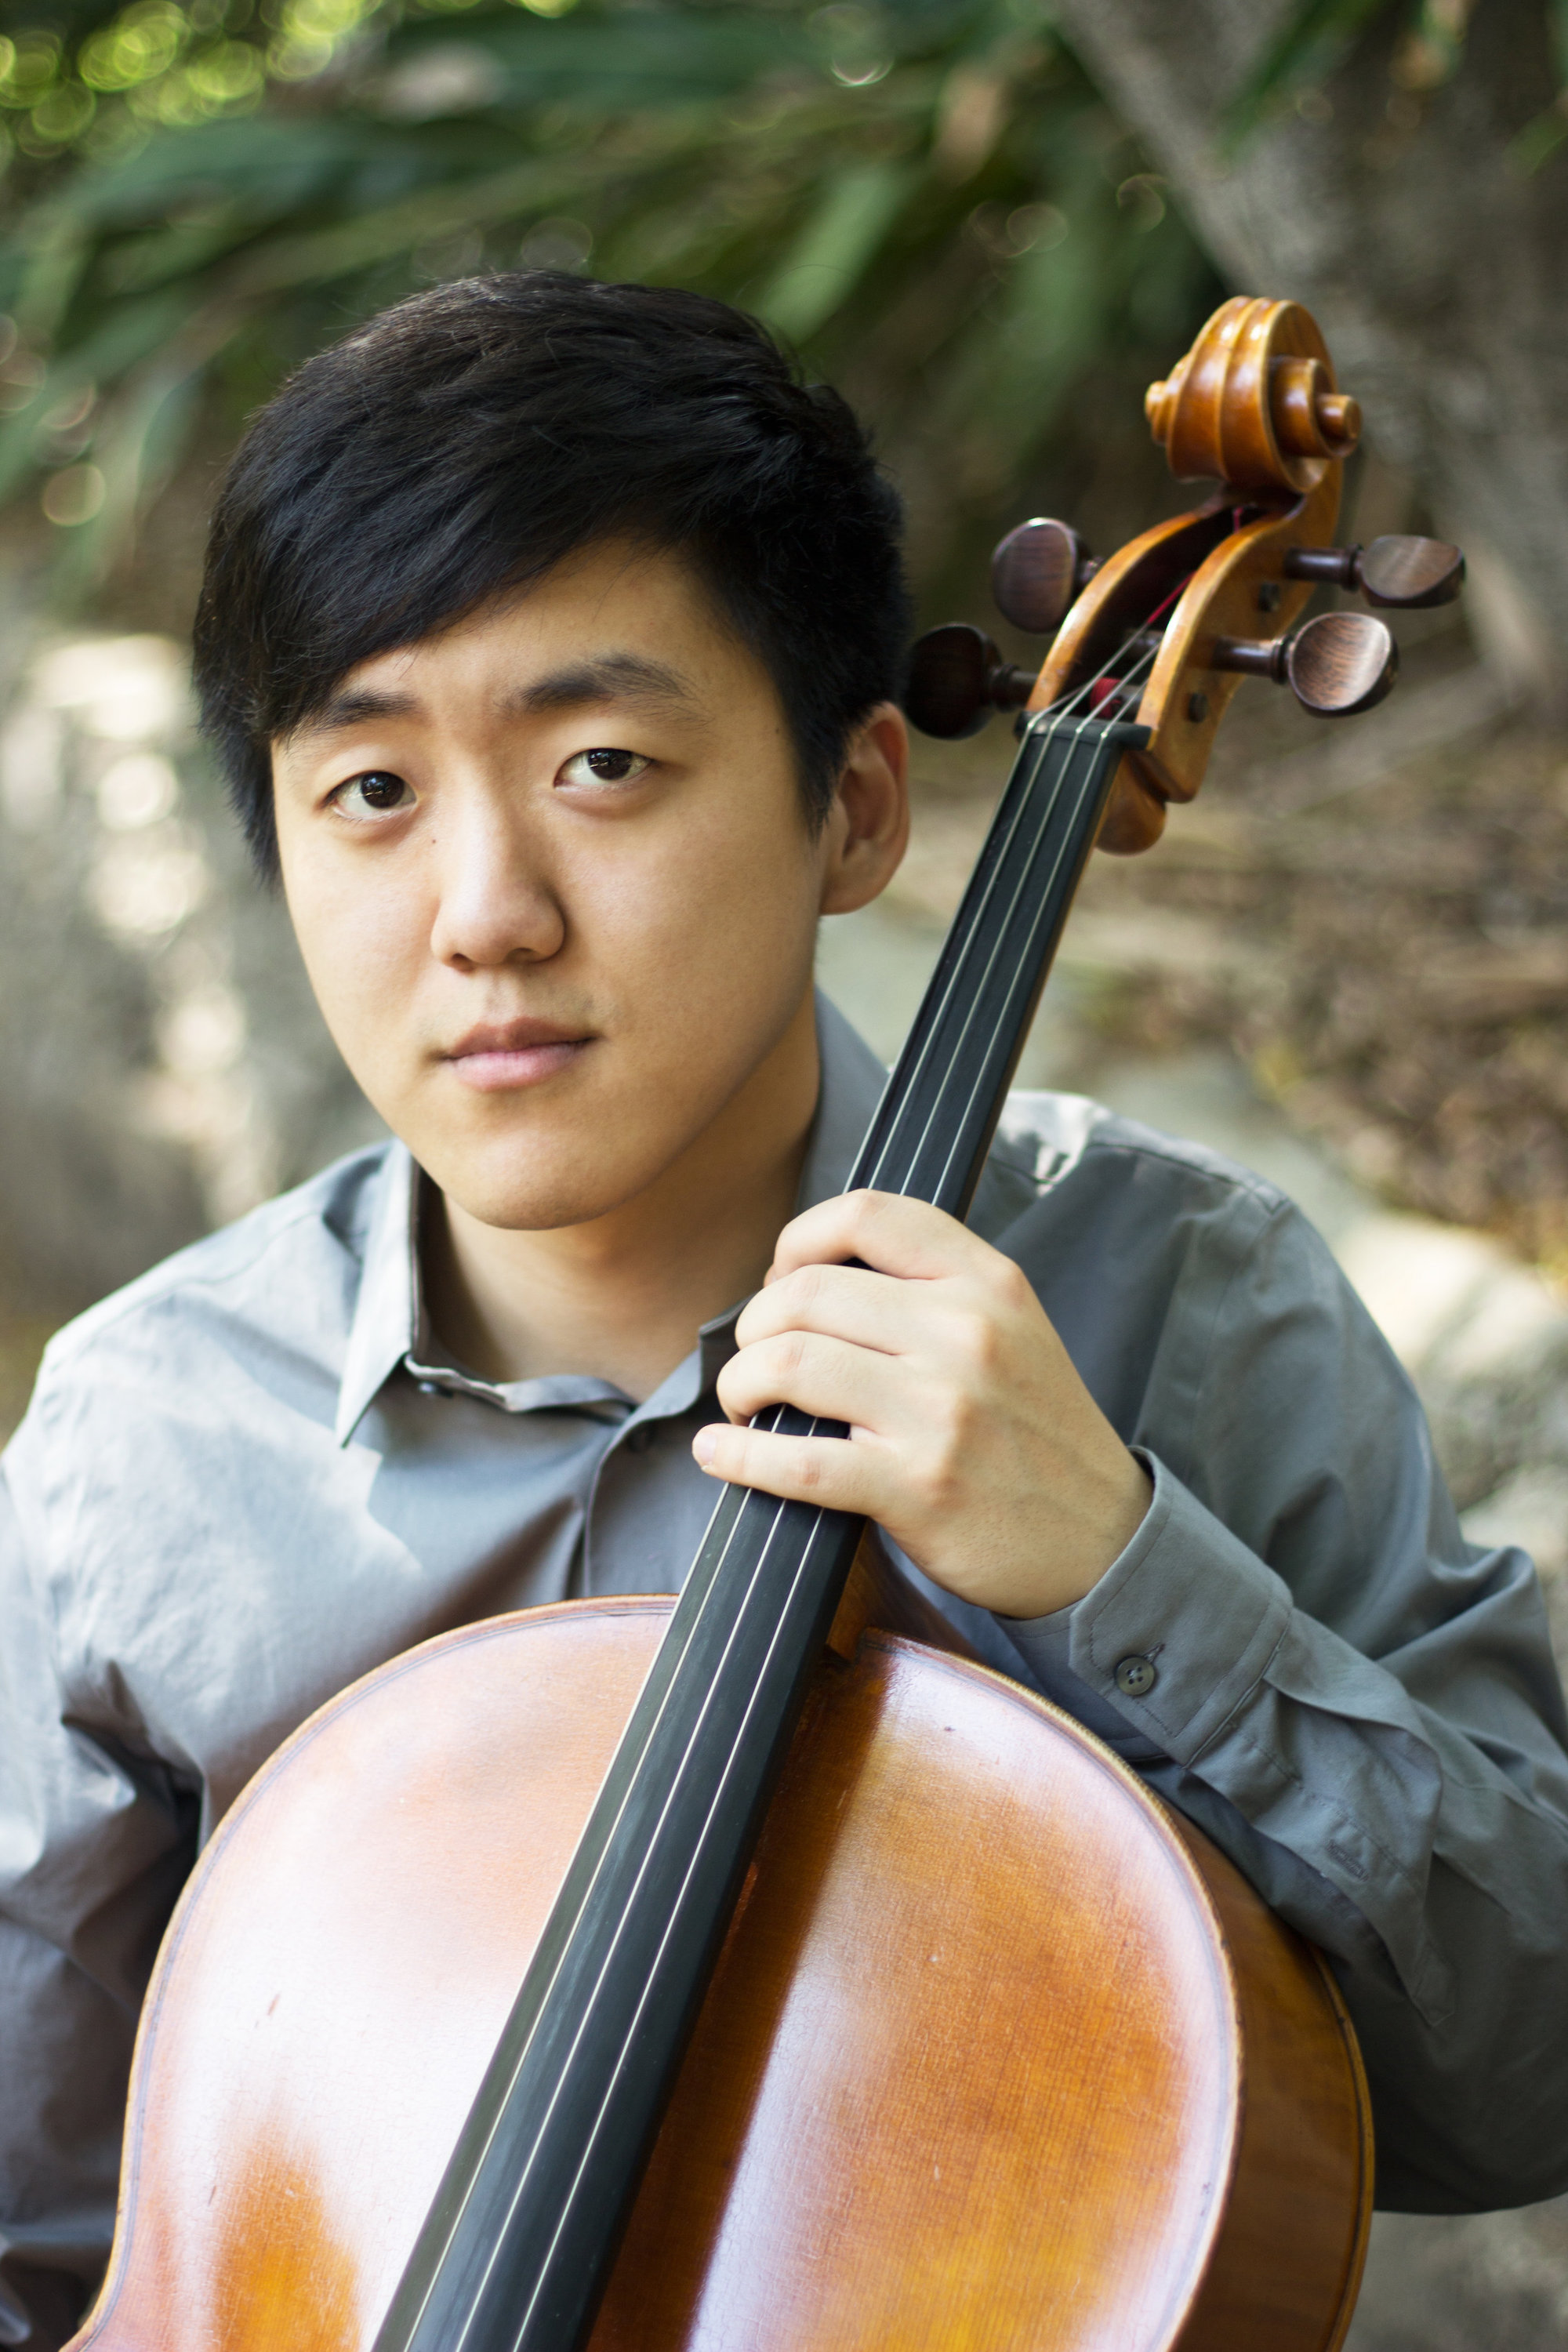 About Me - Born and raised in Los Angeles, Cellist Daniel Lim began his studies at the age of 9 and holds degrees from the New England Conservatory and the Cleveland Institute of Music. His mentors include Yeesun Kim and Stephen Geber while cellists such as Joon Sung Jun and Robert DeMaine were also pivotal in his development.Daniel has had the opportunity to work with esteemed cellists such as Frans Helmerson, Ralph Kirshbaum, Laurence Lesser, Gary Hoffman, and Ron Leonard while also working with Leon Fleischer and members of the Borromeo, Cavani, Cleveland, Julliard, Miami, New Orford, St Lawrence, Tokyo and Ying String Quartets. He is currently a regular performer at The Caroga Lake Music Festival and has attended festivals such as the Toronto Summer Music Festival, National Repertory Orchestra, Orford Arts Centre, and The Kent Blossom Music Festival.Daniel currently resides in Los Angeles and performs with various ensembles in the Los Angeles area; recent highlights include guest performances with Splntrd Wood Cello Trio and performances with the Santa Barbara Symphony, Southeast Symphony, and The American Youth Symphony. He has also recorded for many mainstream artists as well as TV shows and films. As an educator, Daniel has taught at various organizations and public schools throughout the Los Angeles area while maintaining a private studio. Having spent two years in the Suzuki Method Teacher Training Program under the tutelage of Dr. Melissa Kraut, he has extensive experience teaching cellists of all ages in individual and group settings.